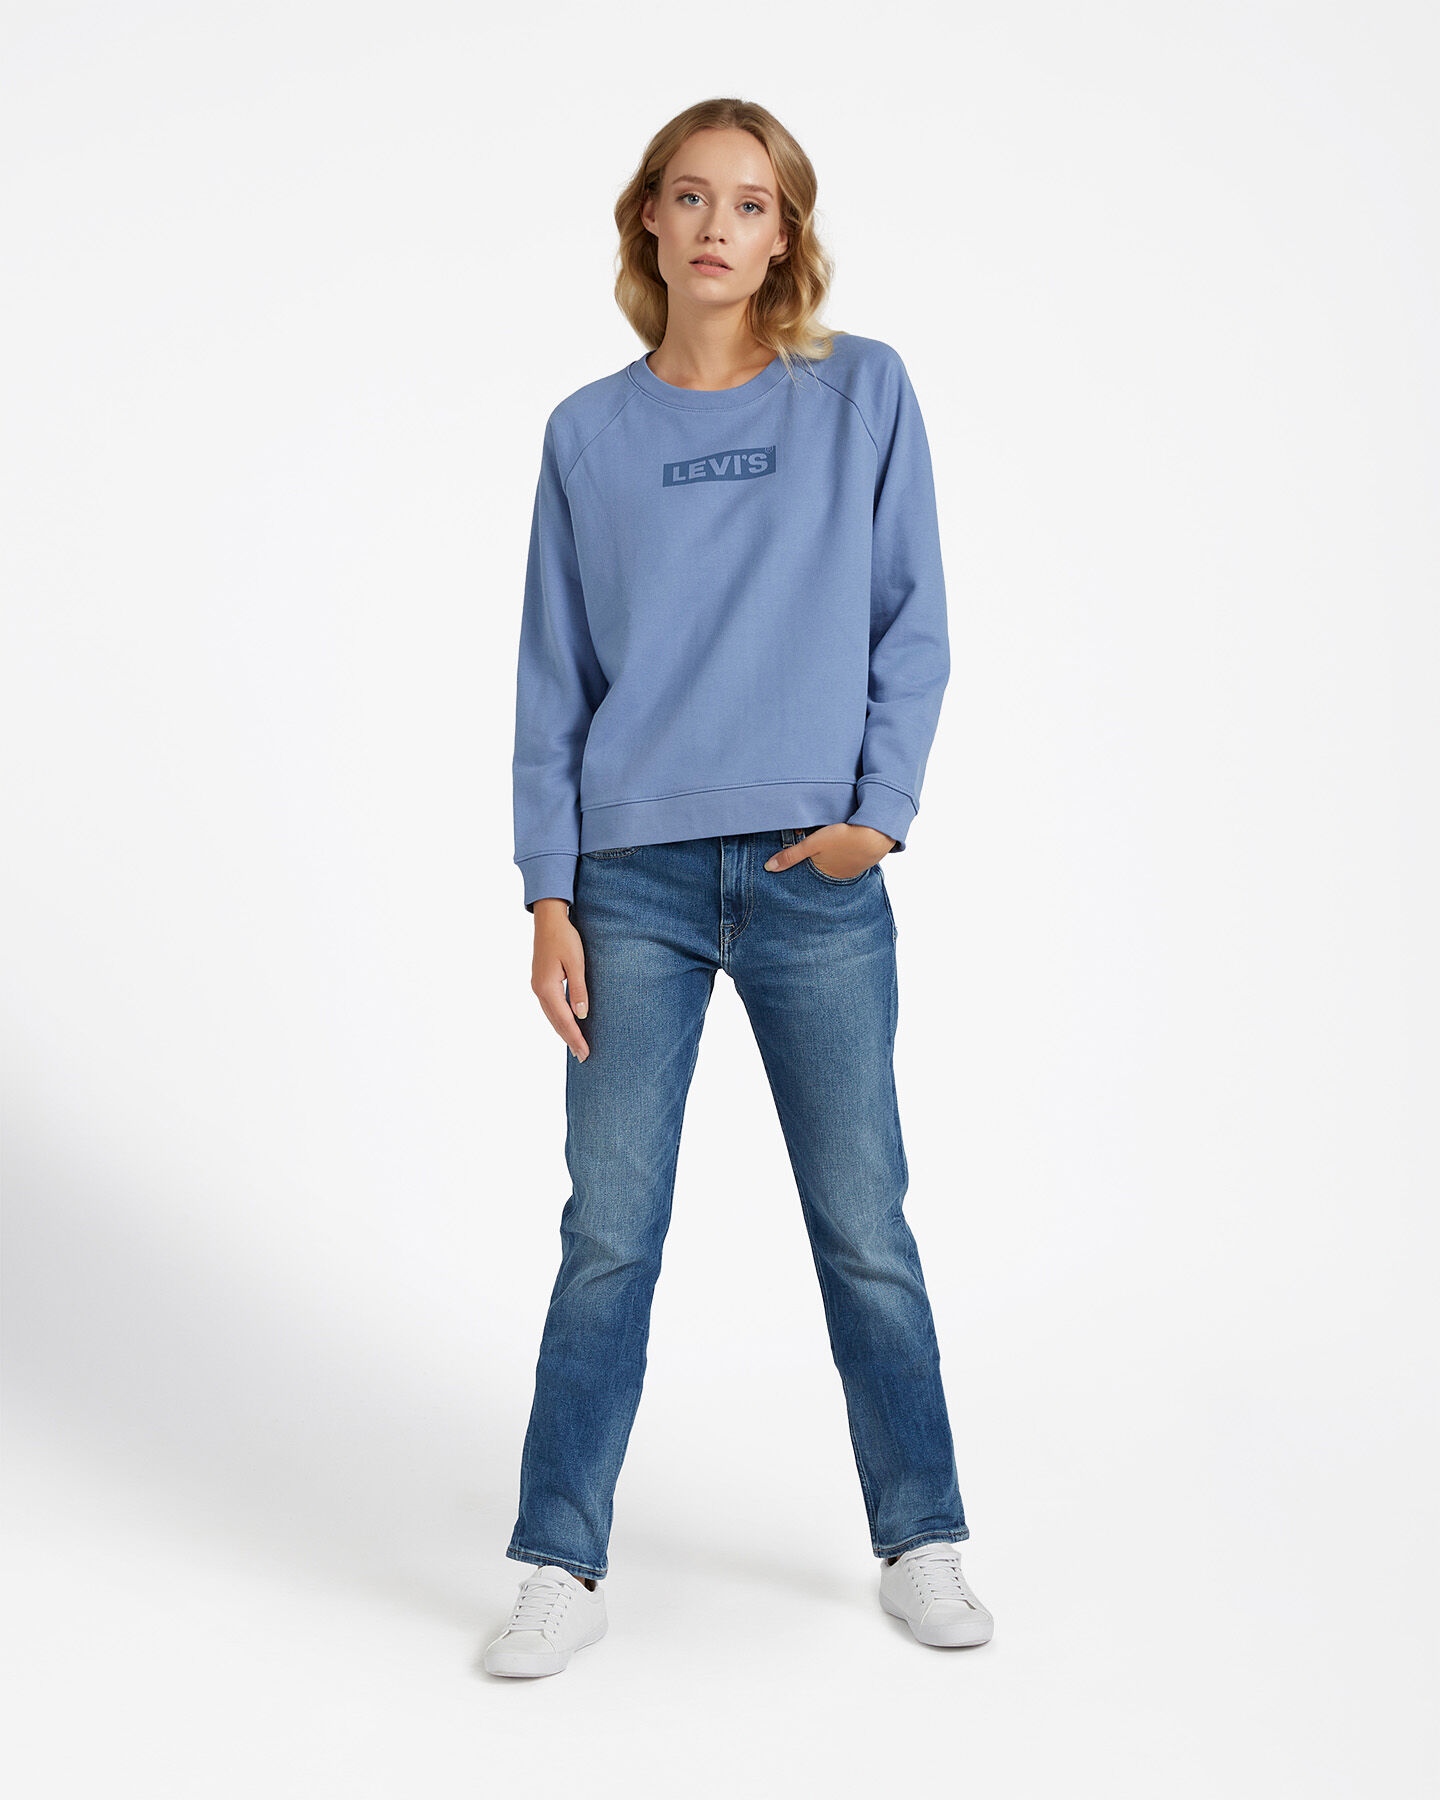 Felpa LEVI'S RELAXED GRAPHIC BOXTAB W S4083510 scatto 1